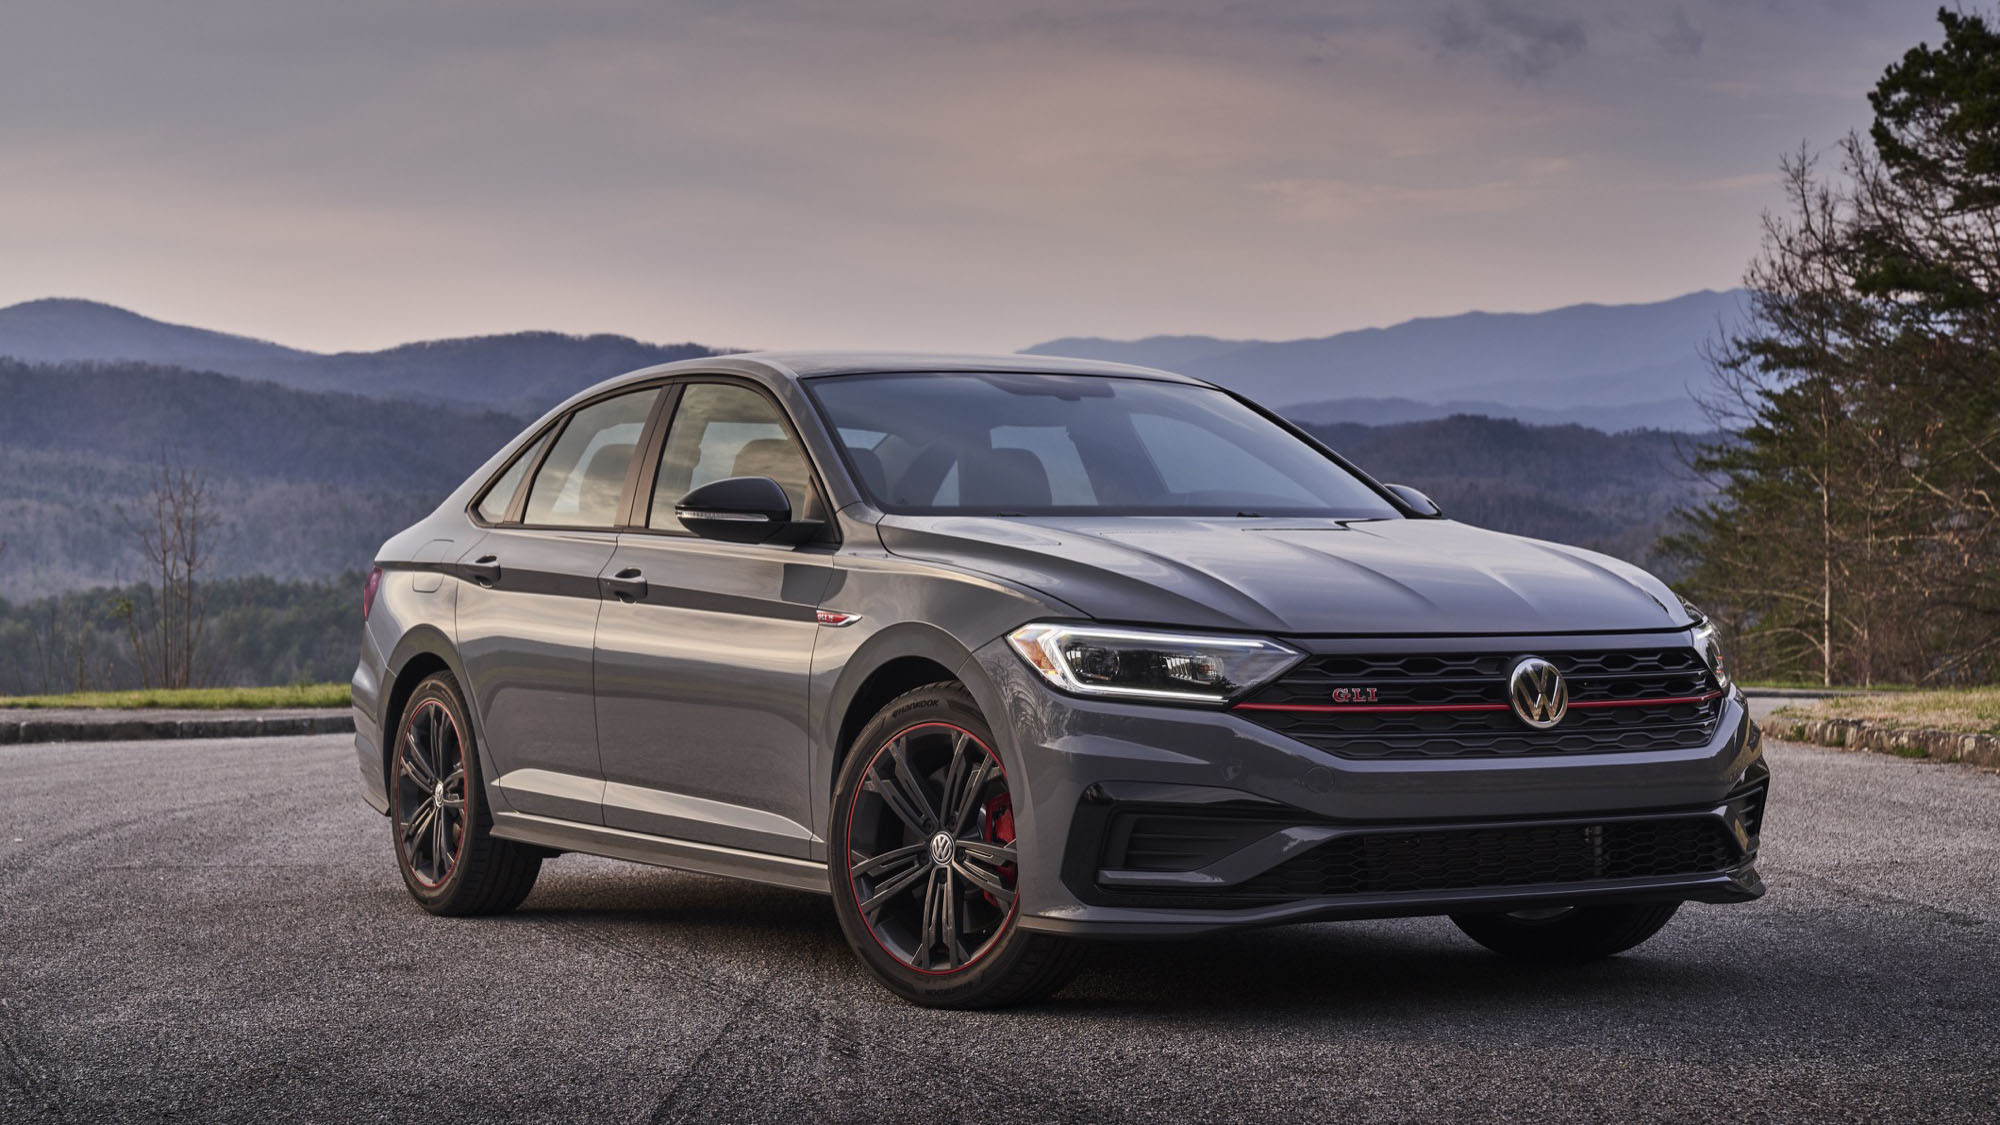 2019 VW Jetta GLI Review Specs Price And More Autoblog